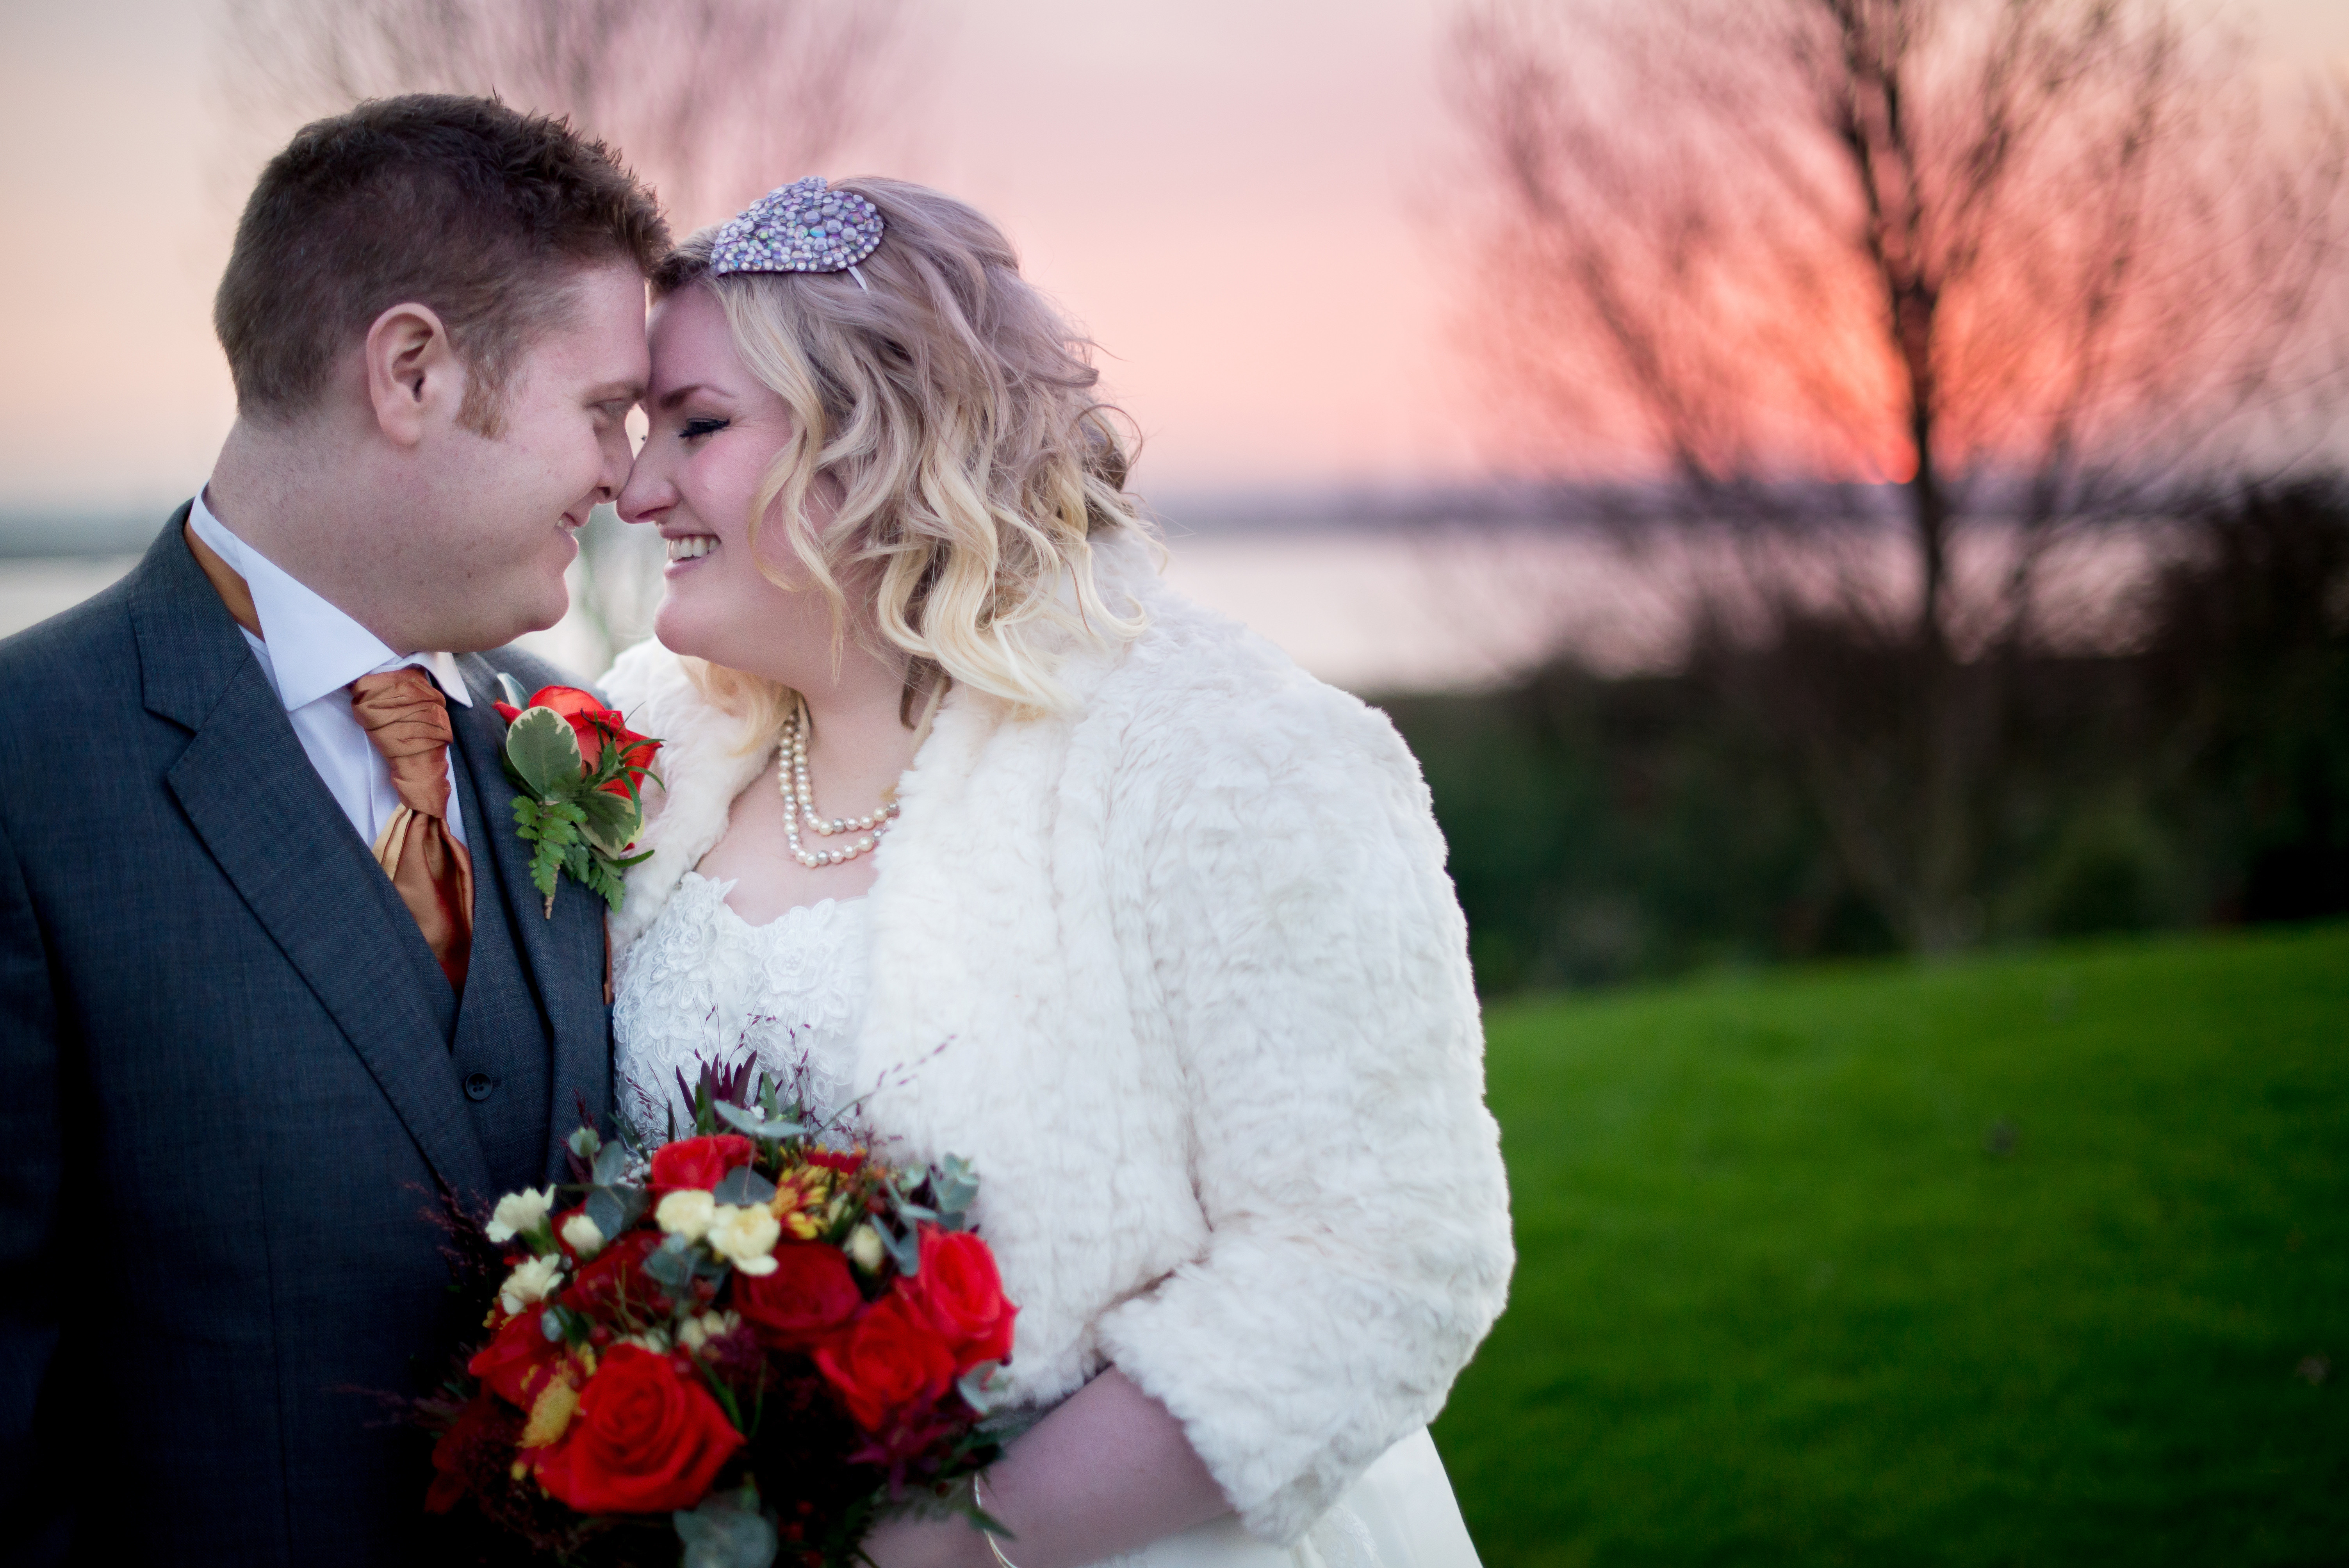 Weddings - Starting from £2500